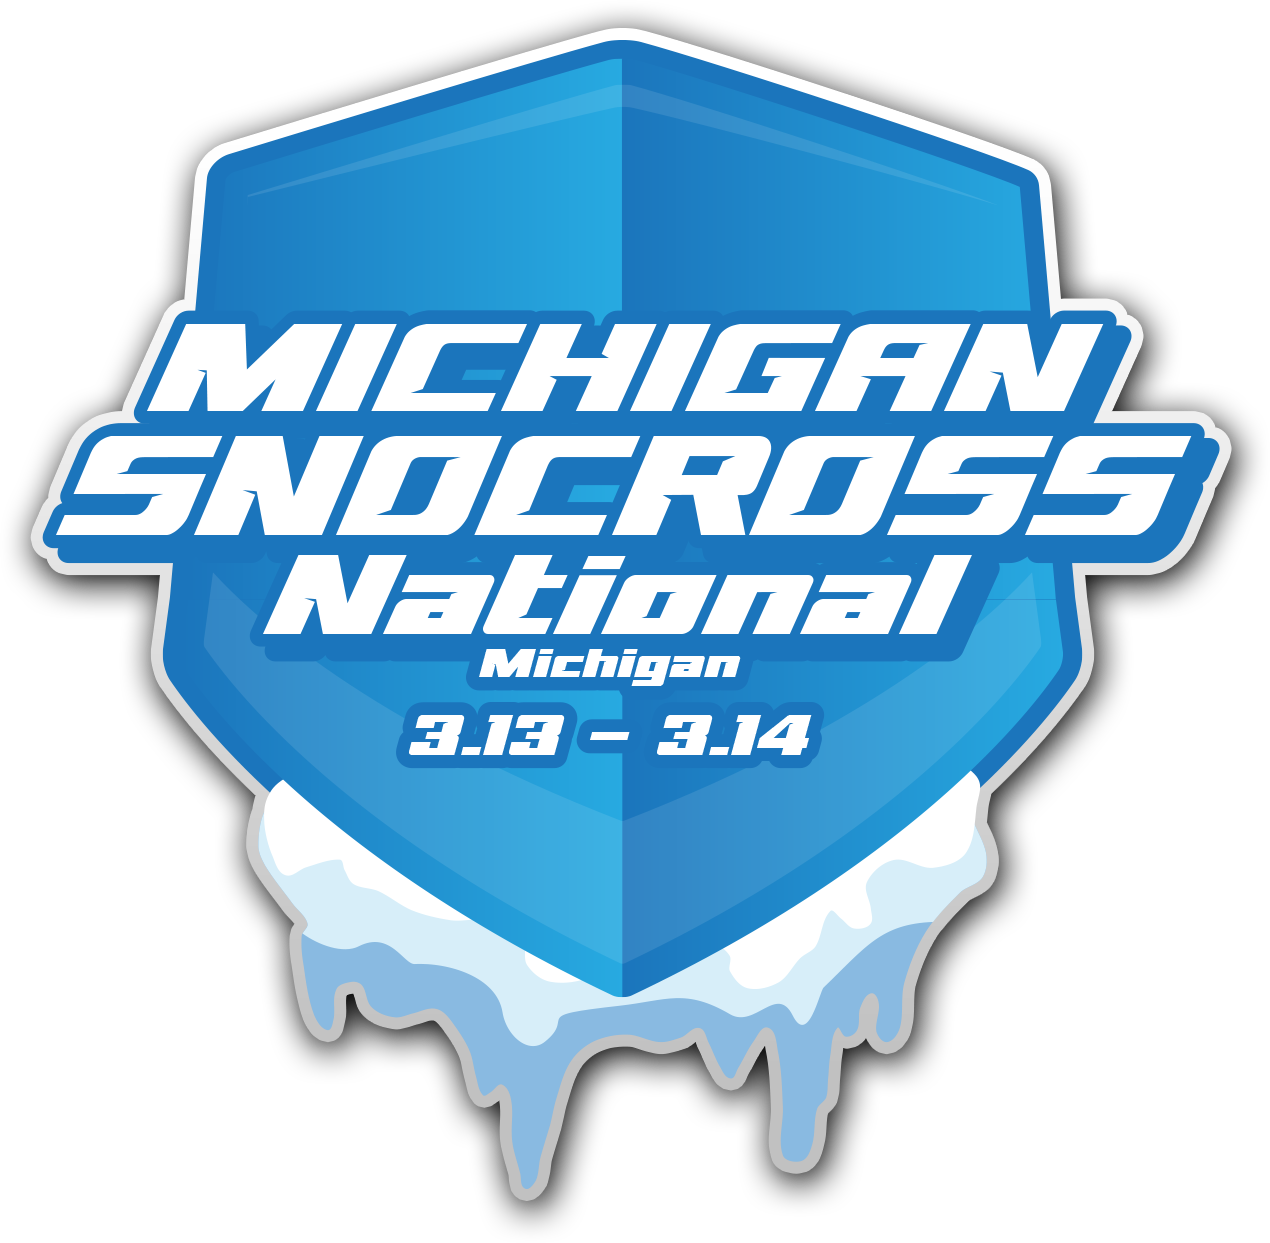 Image for Michigan Snocross National - Friday Mar. 13 & Mar. 14, 2020